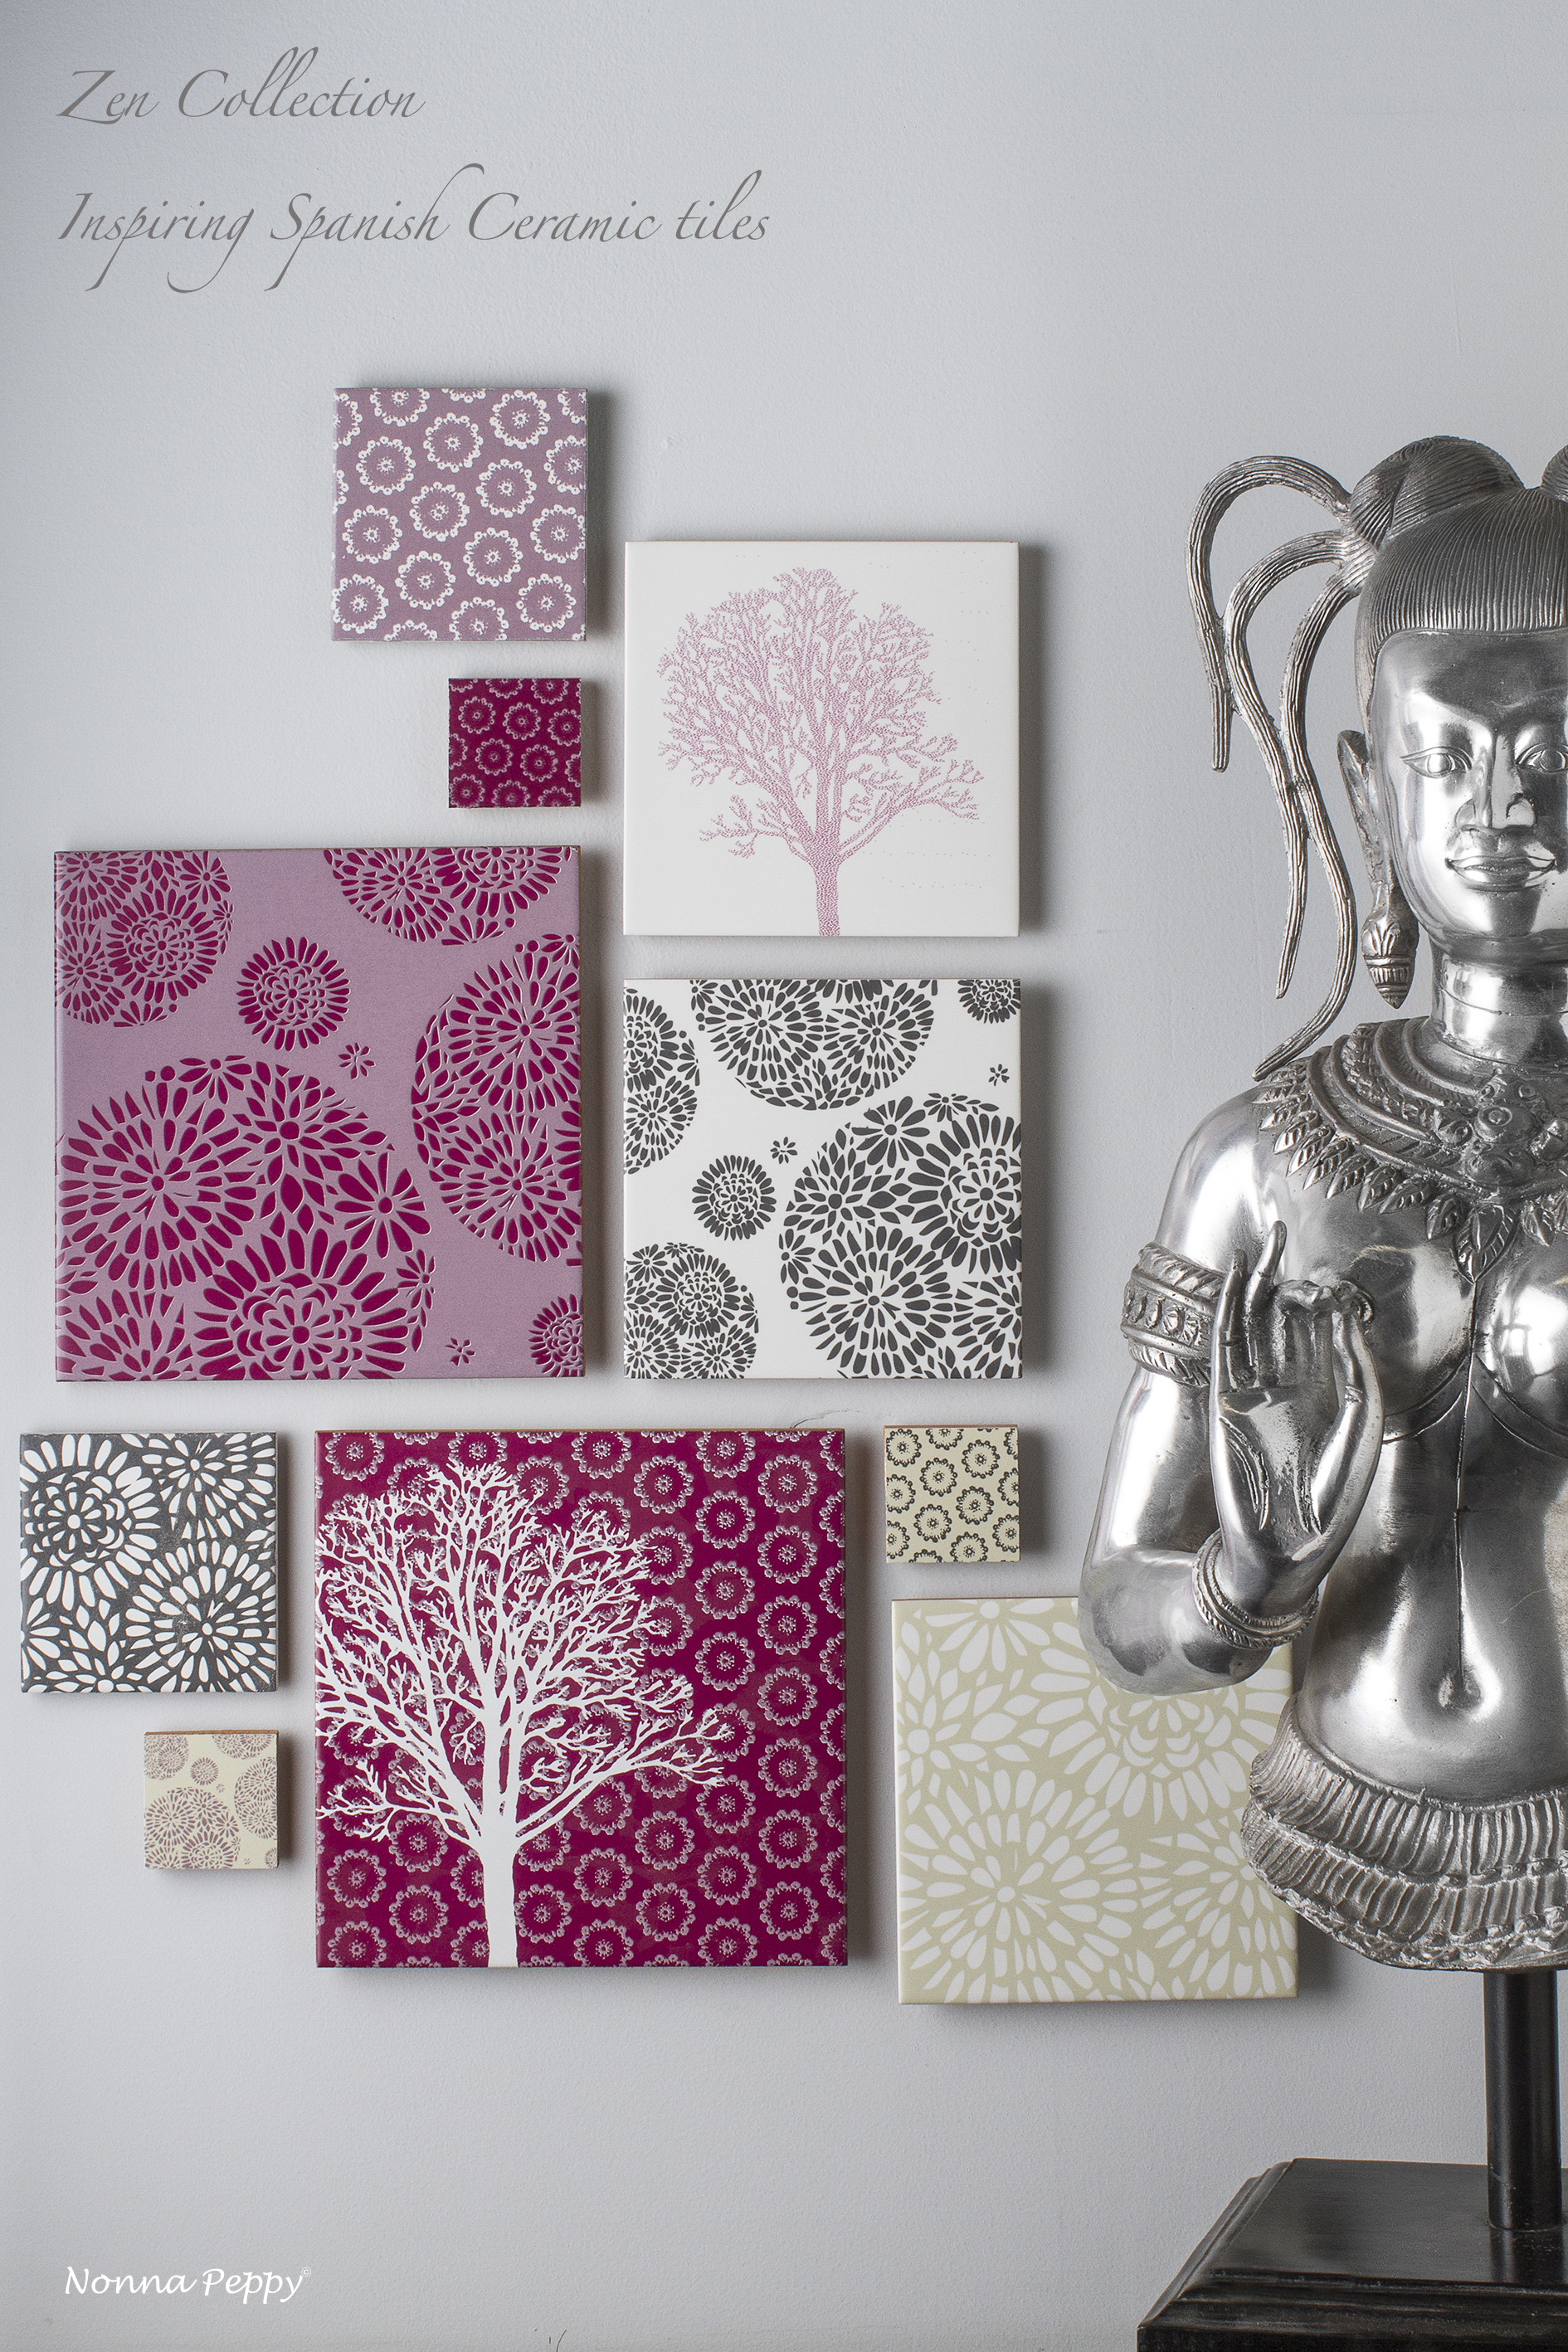 Zen Collection ceramic tiles